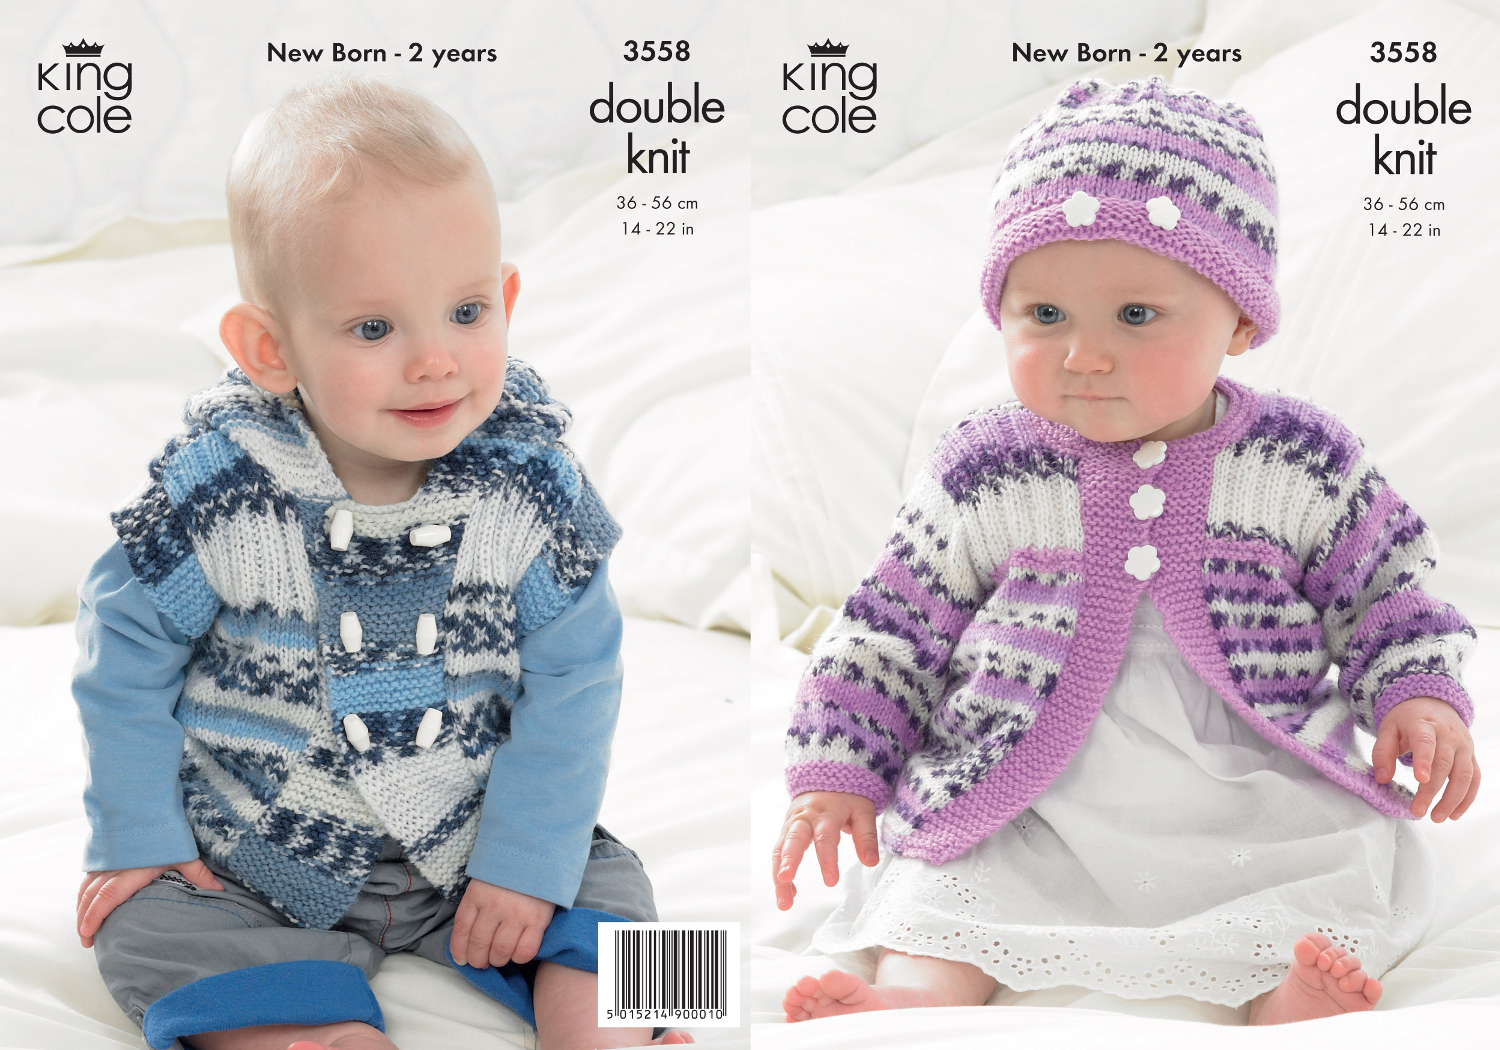 King cole baby double knitting dk pattern striped jacket gilet king cole baby double knitting dk pattern striped jacket gilet matching hat 3558 bankloansurffo Choice Image